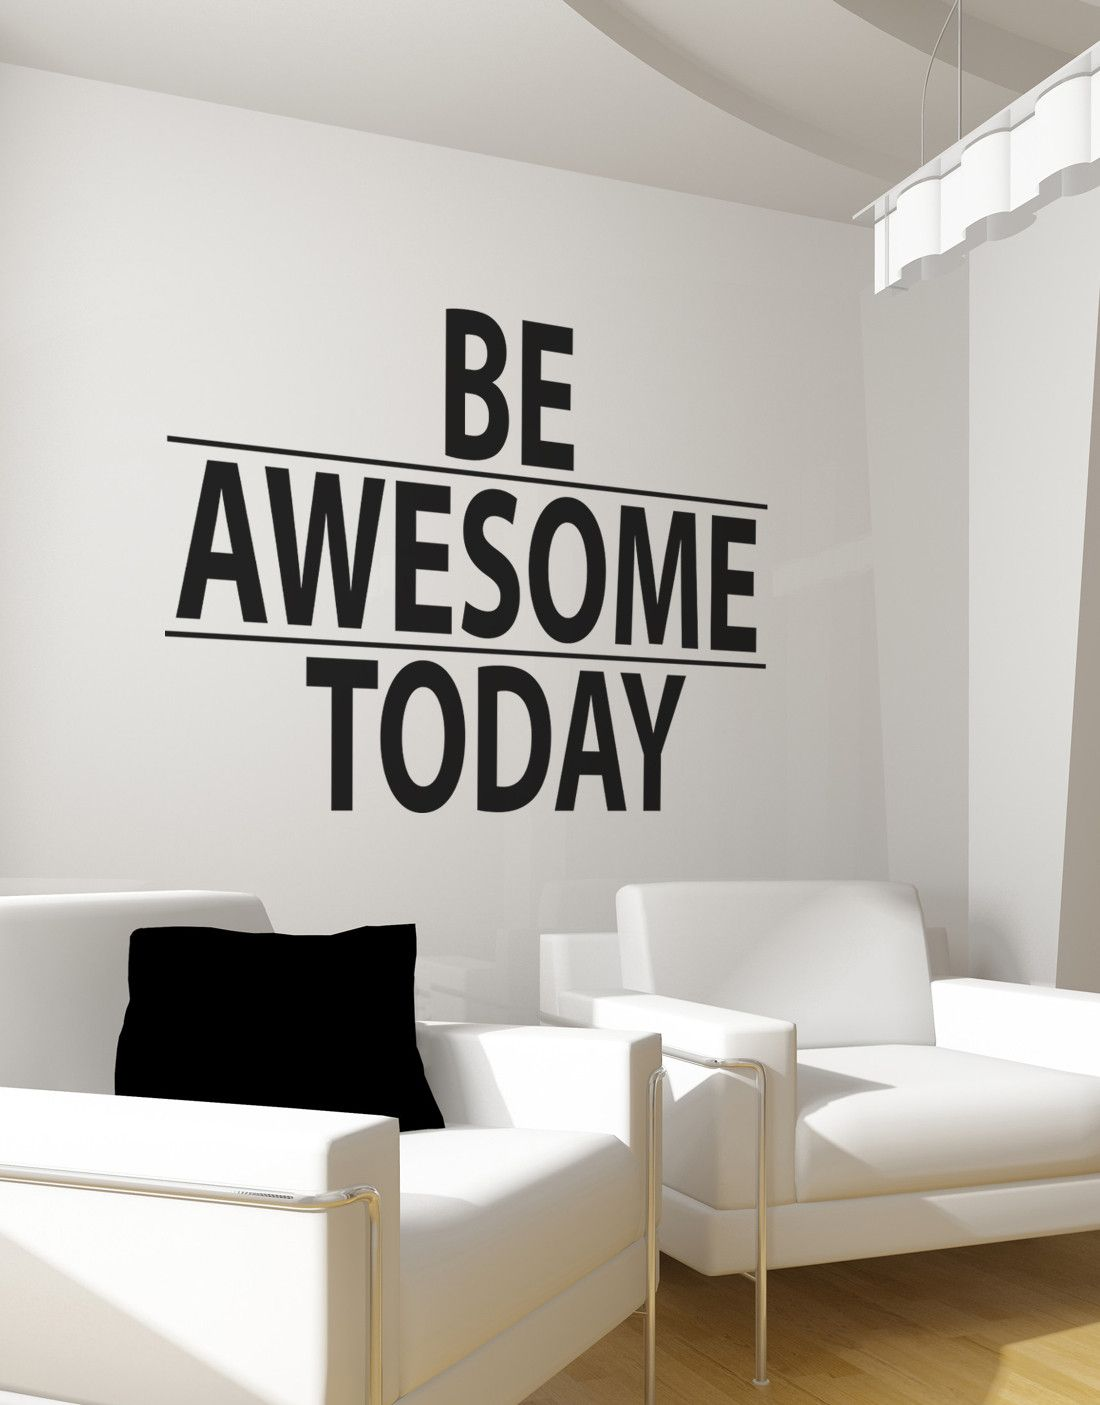 Wonderful Be Awesome Today Motivational Quote Wall Decal Sticker #6013